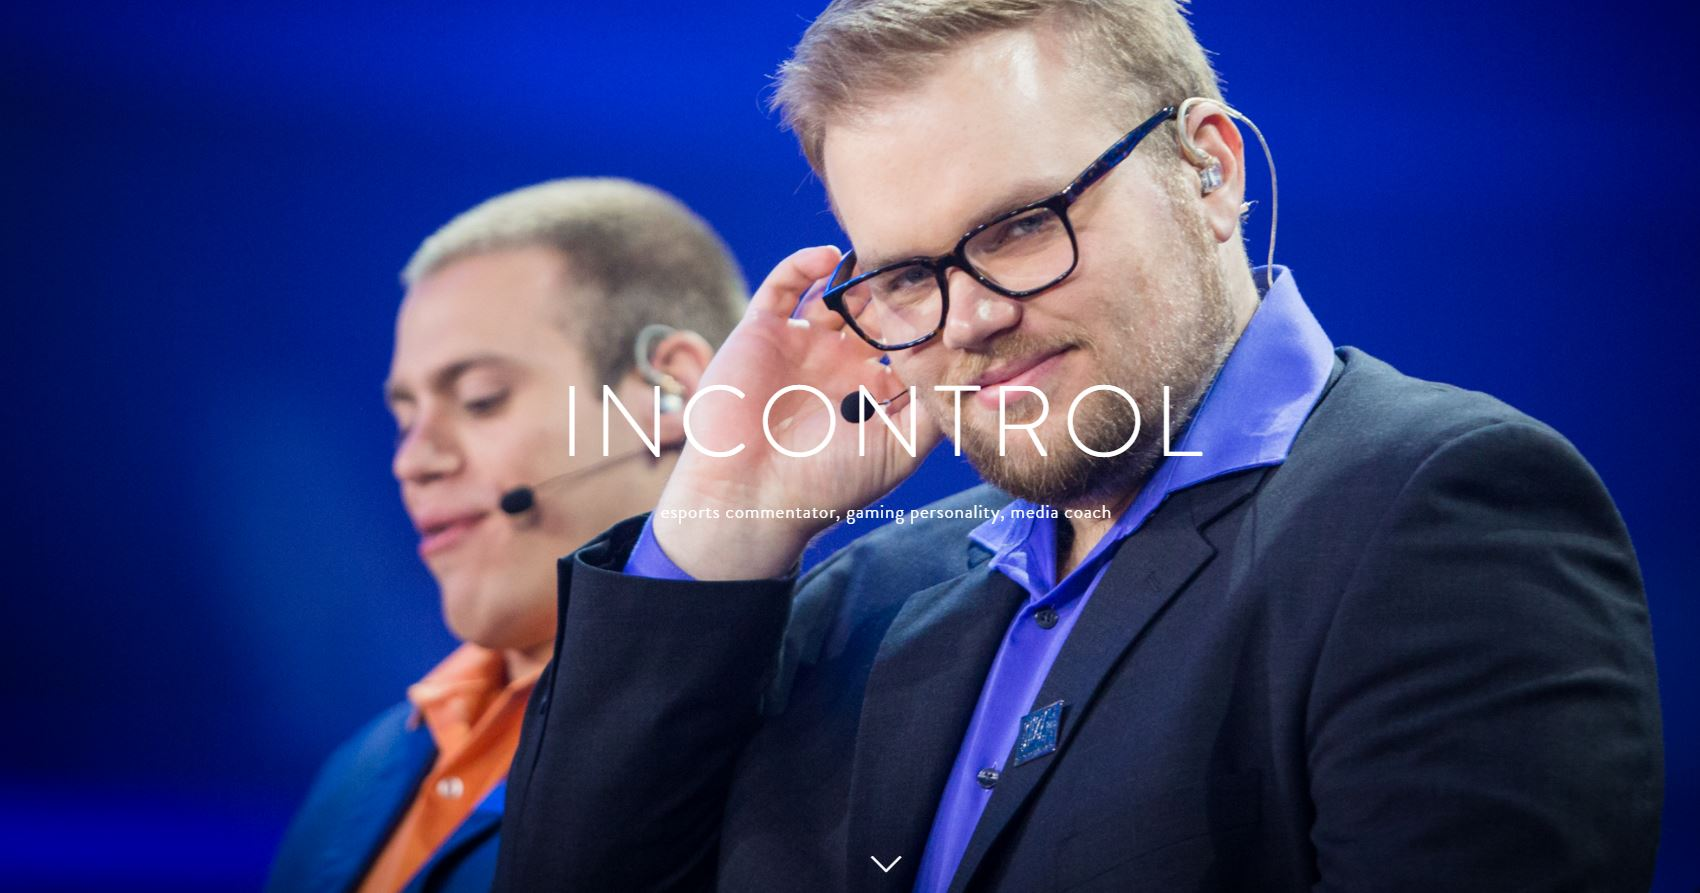 News: INcontroL, famed StarCraft player and caster, dies at age 33